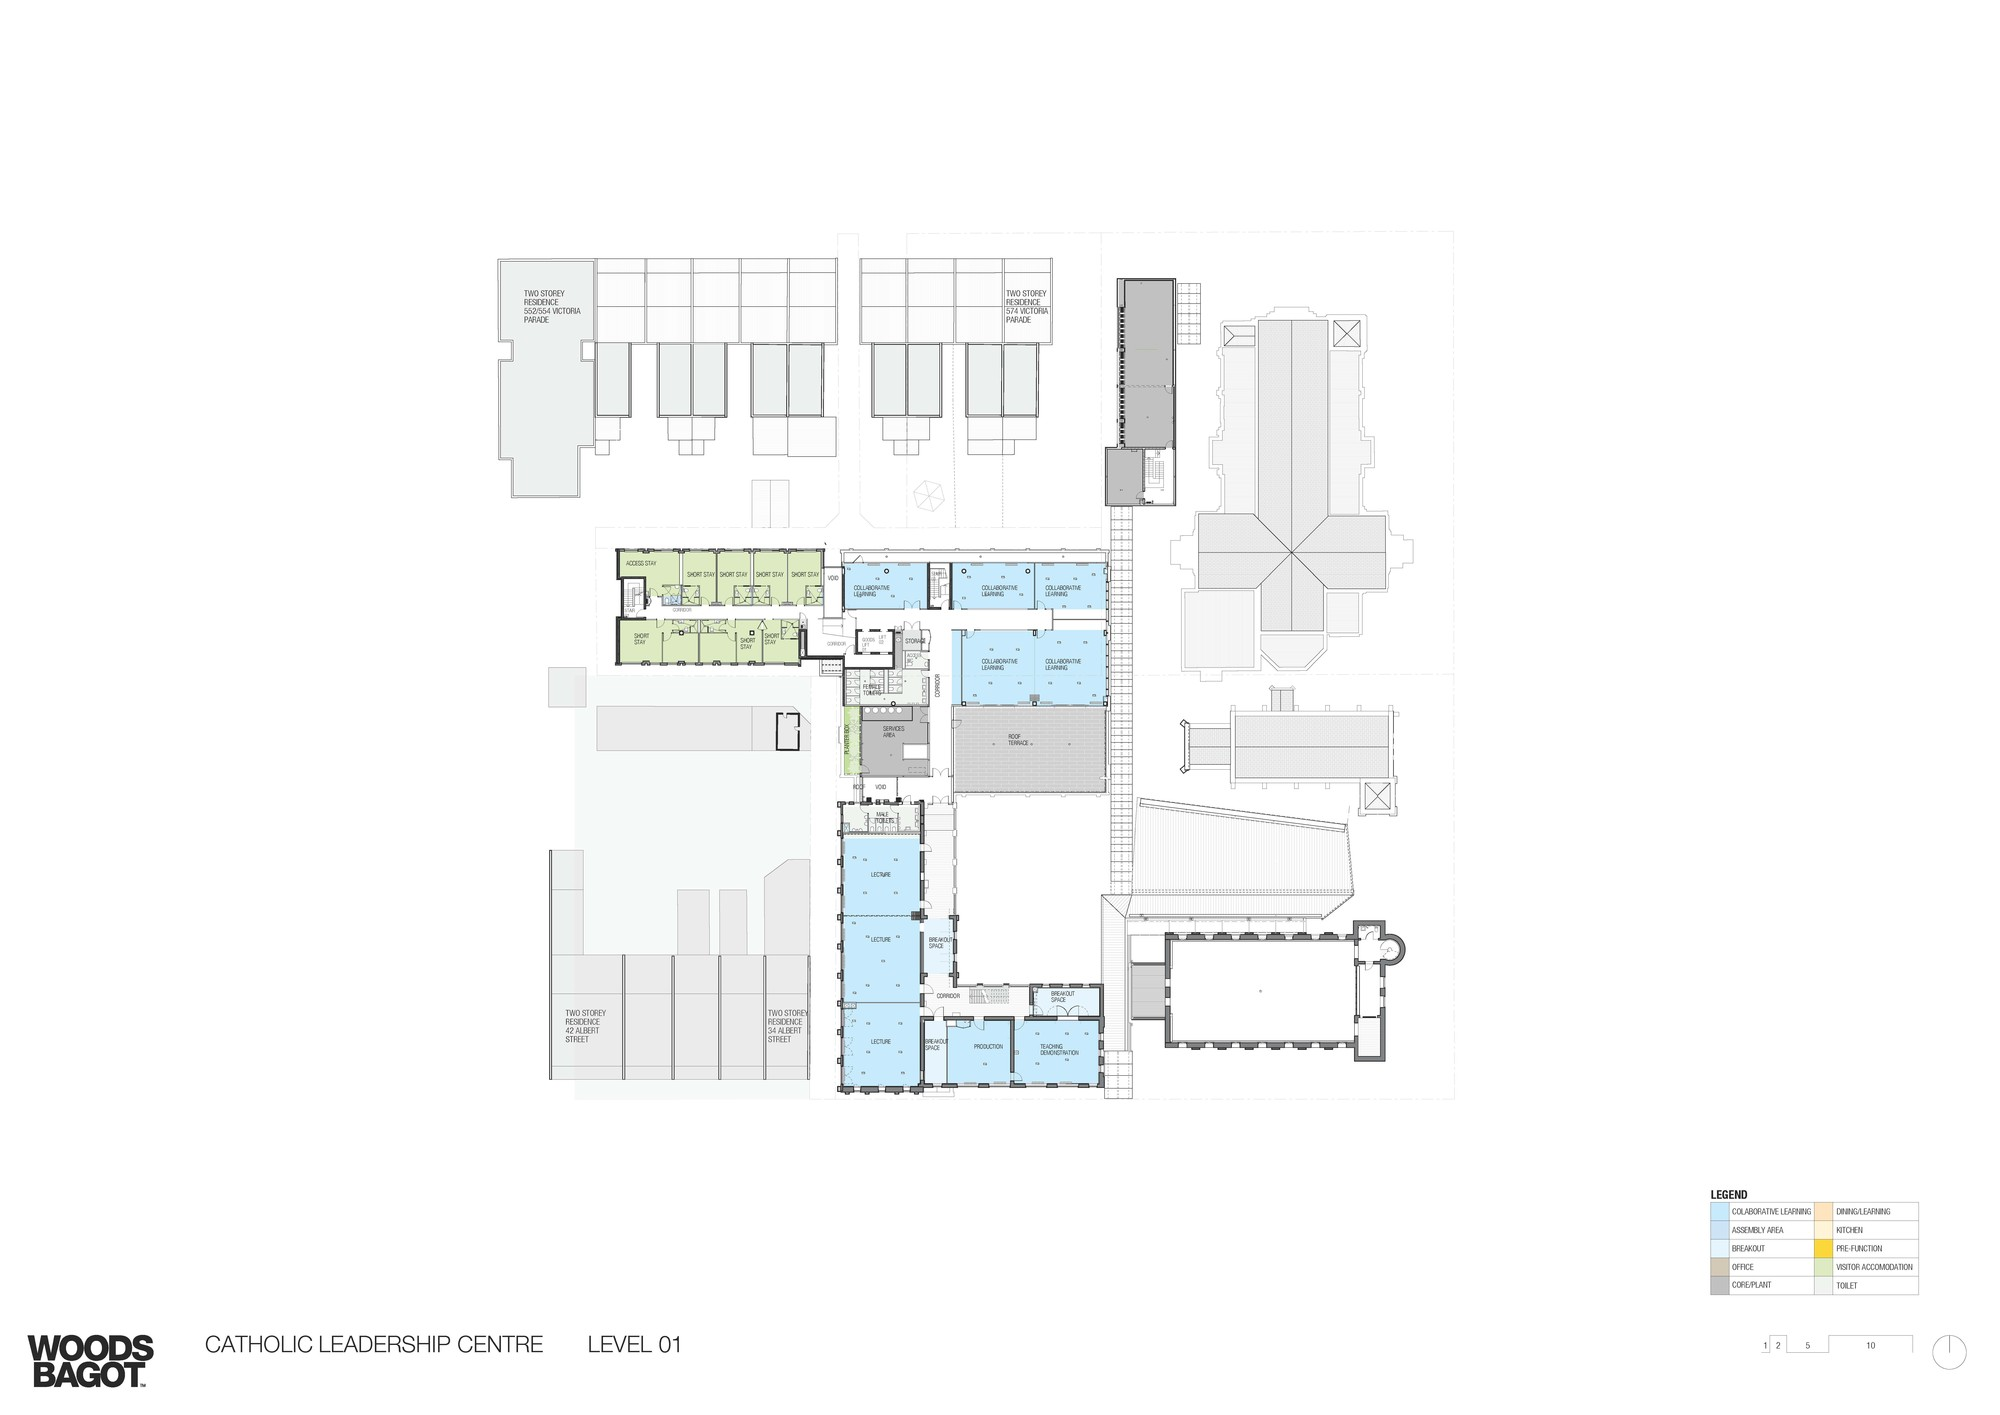 catholic leadership centre woods bagot archdaily first floor plan